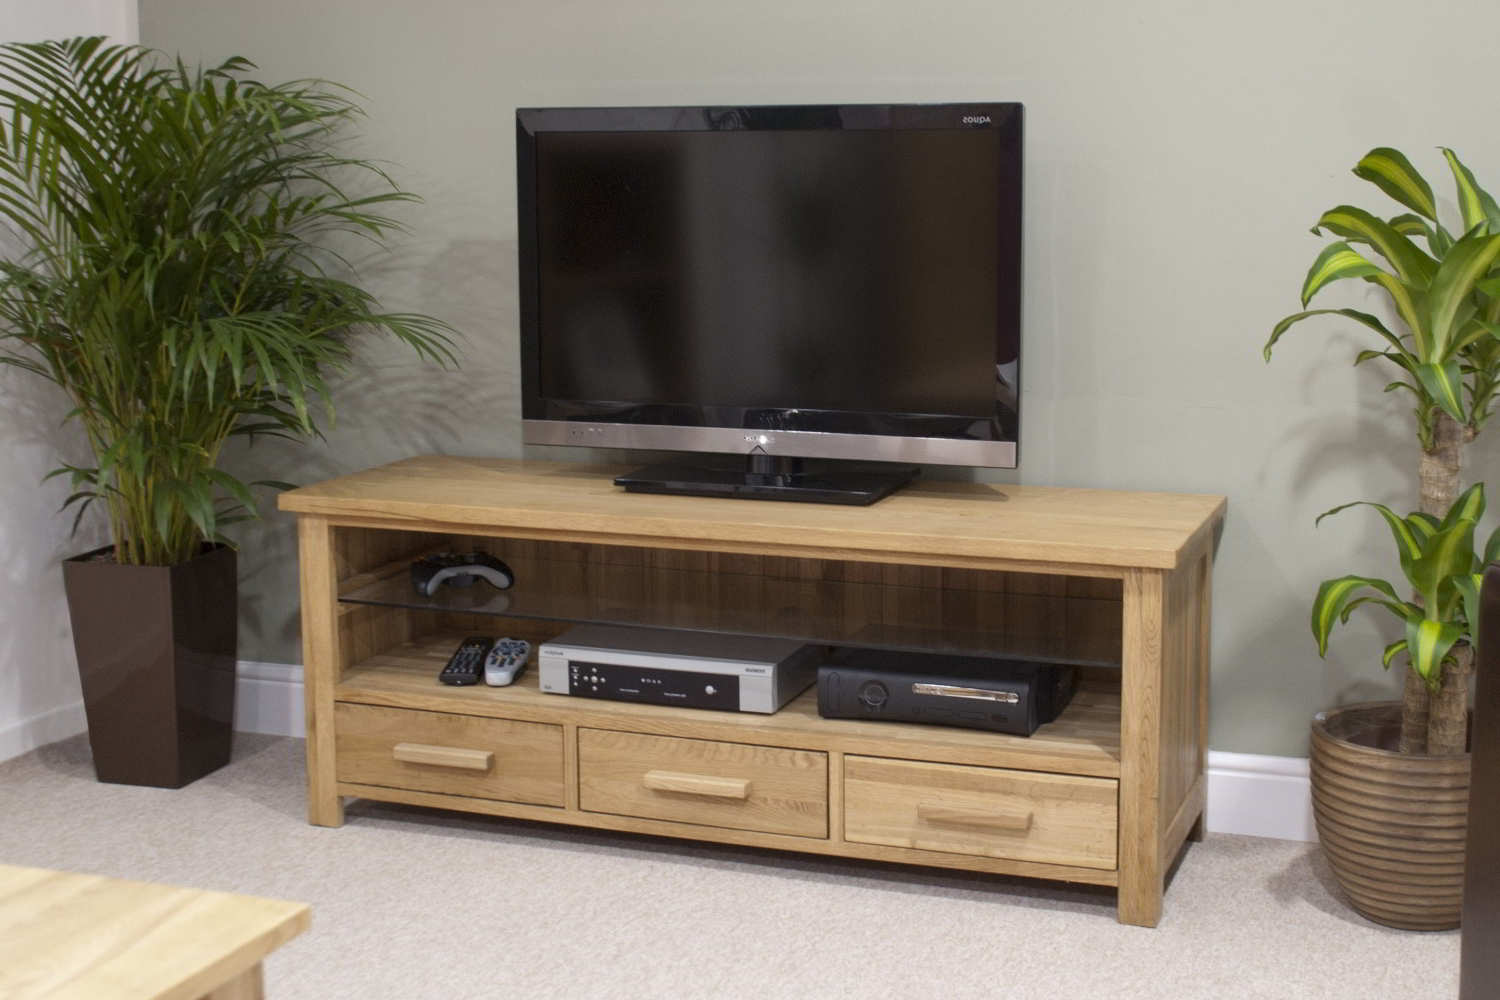 Most Recent Eton Solid Oak Living Room Furniture Widescreen Tv Cabinet Stand Intended For Widescreen Tv Cabinets (View 9 of 20)